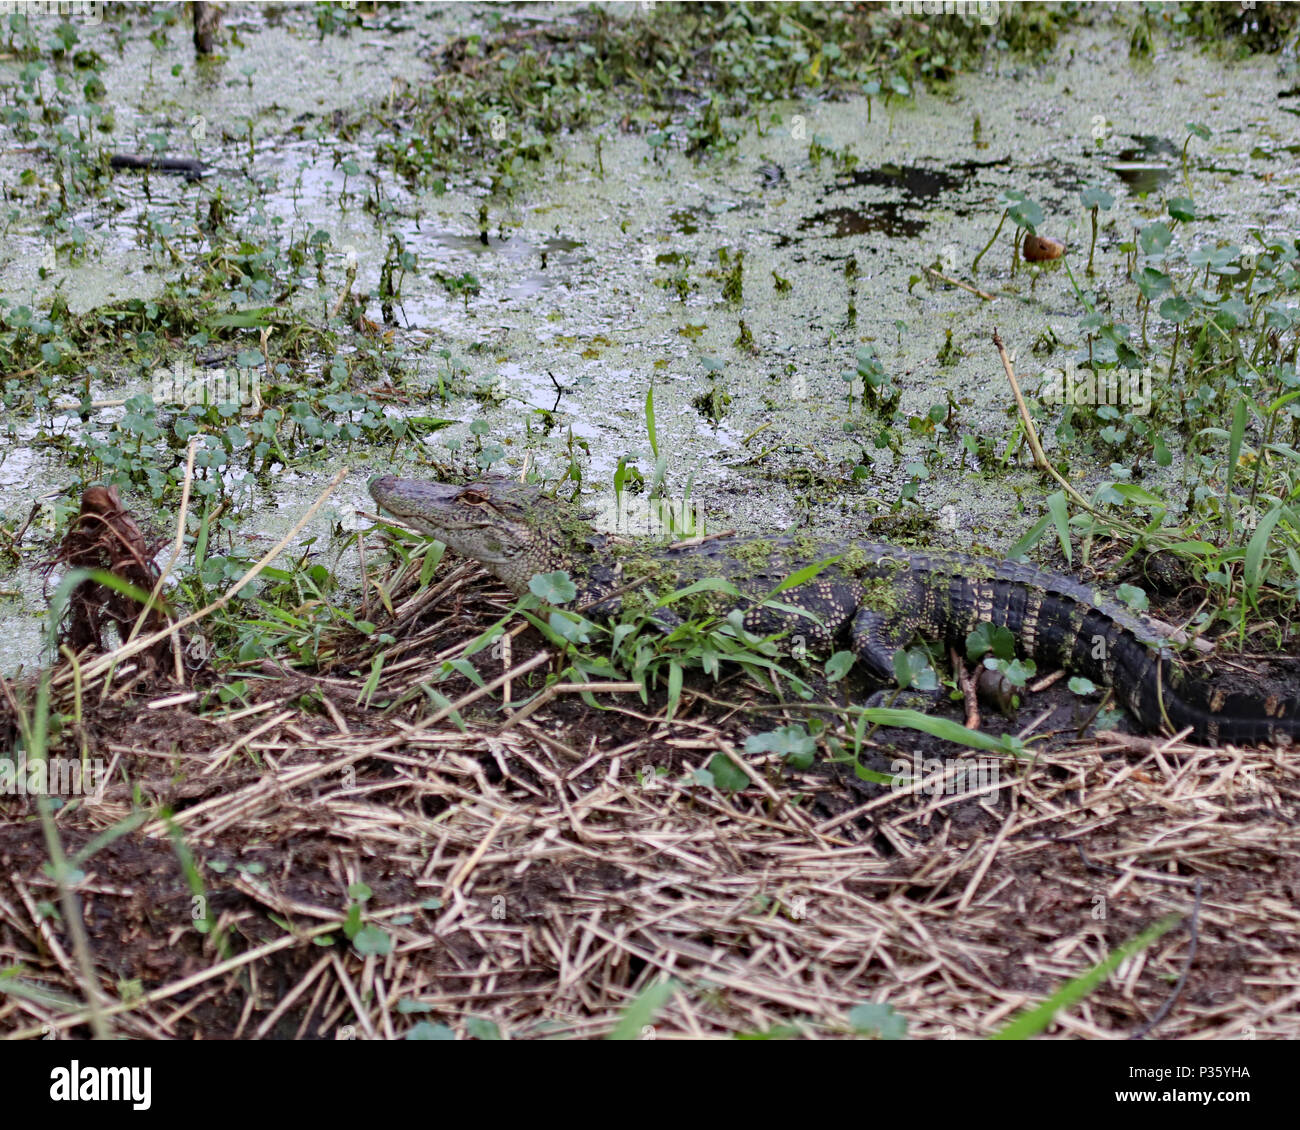 Alligator hidden along the edge of a swamp in central Florida - Stock Image